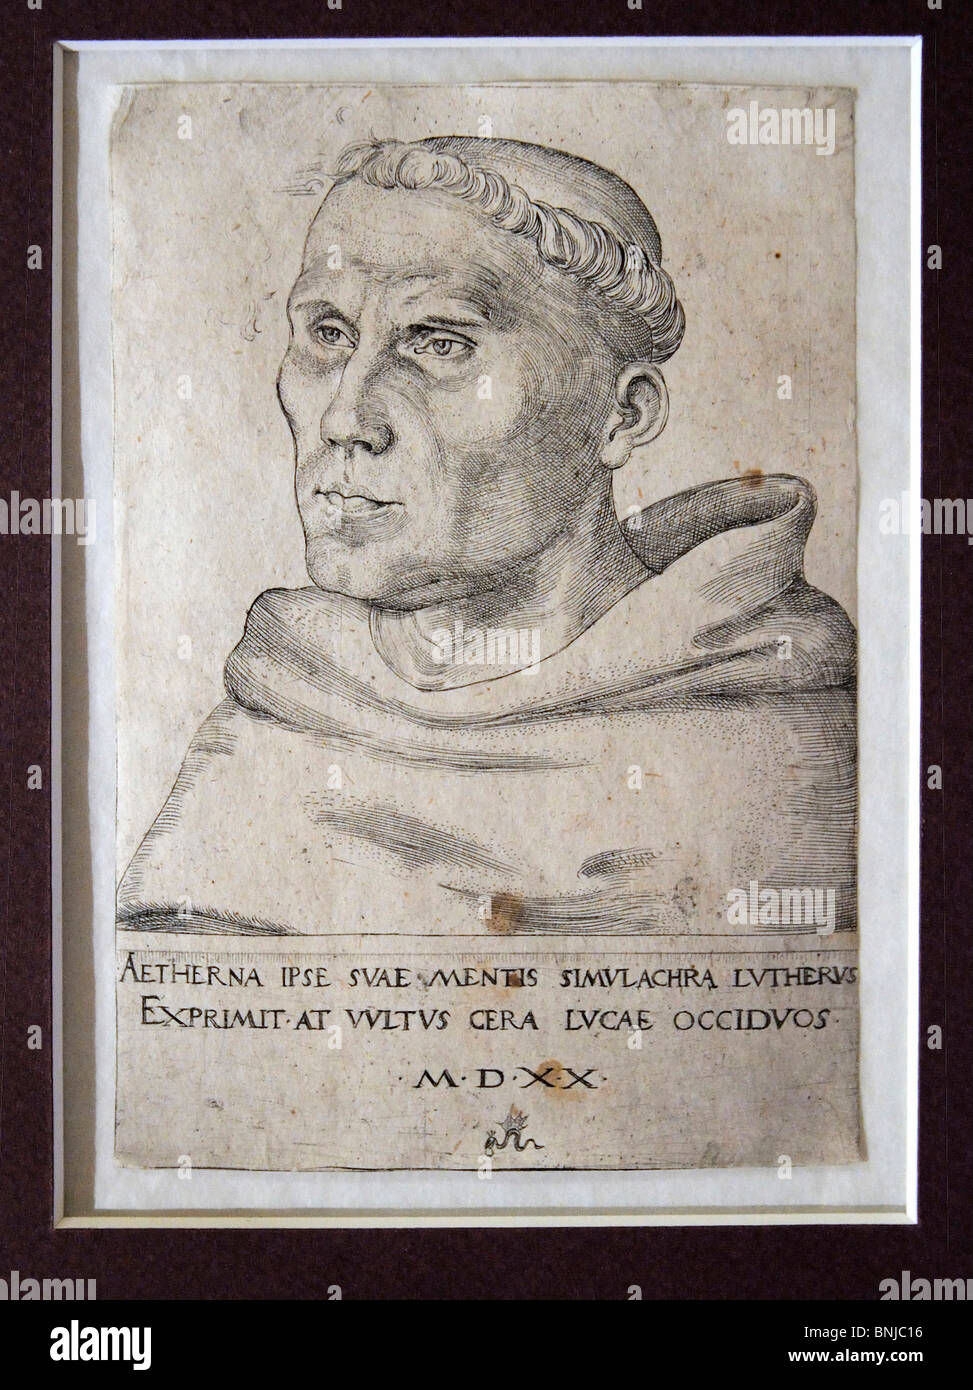 Luther Martin reformer picture copperplate monument memory Augustinian monk Augustinian monk theology schism church - Stock Image